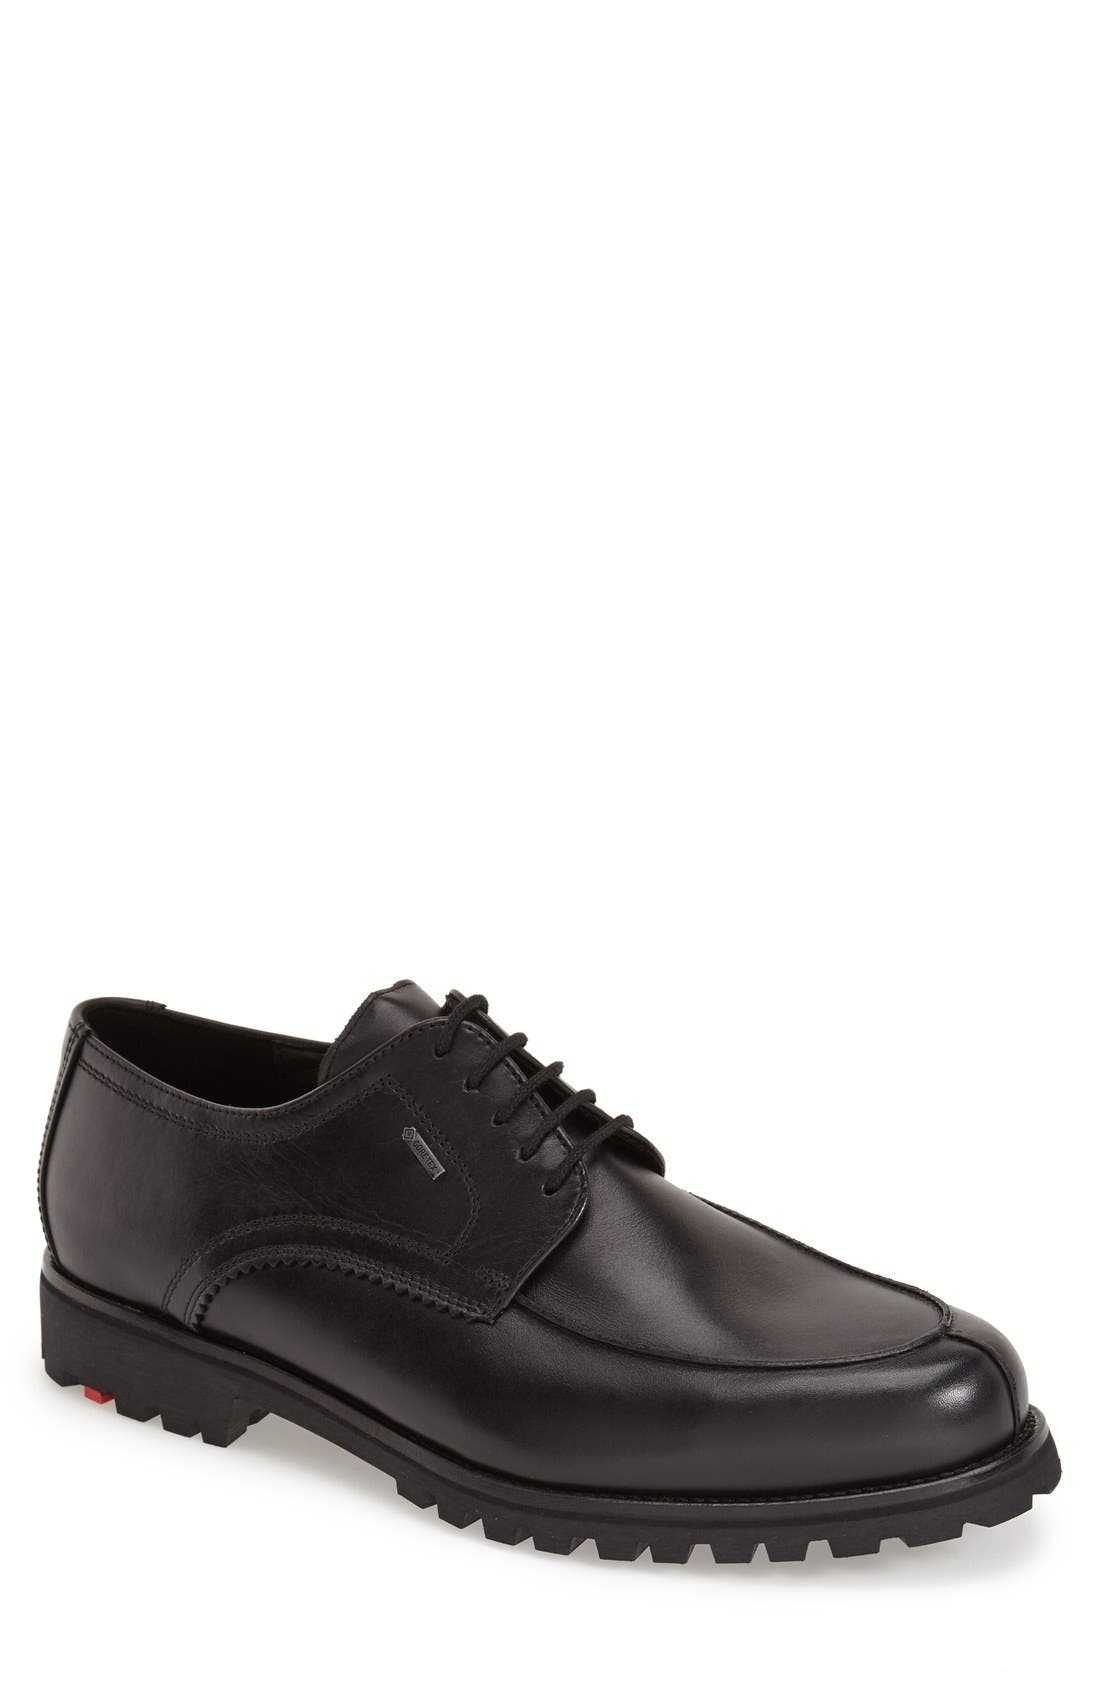 Alternate Image 1 Selected - LLOYD 'Valdez' Waterproof Oxford (Men)